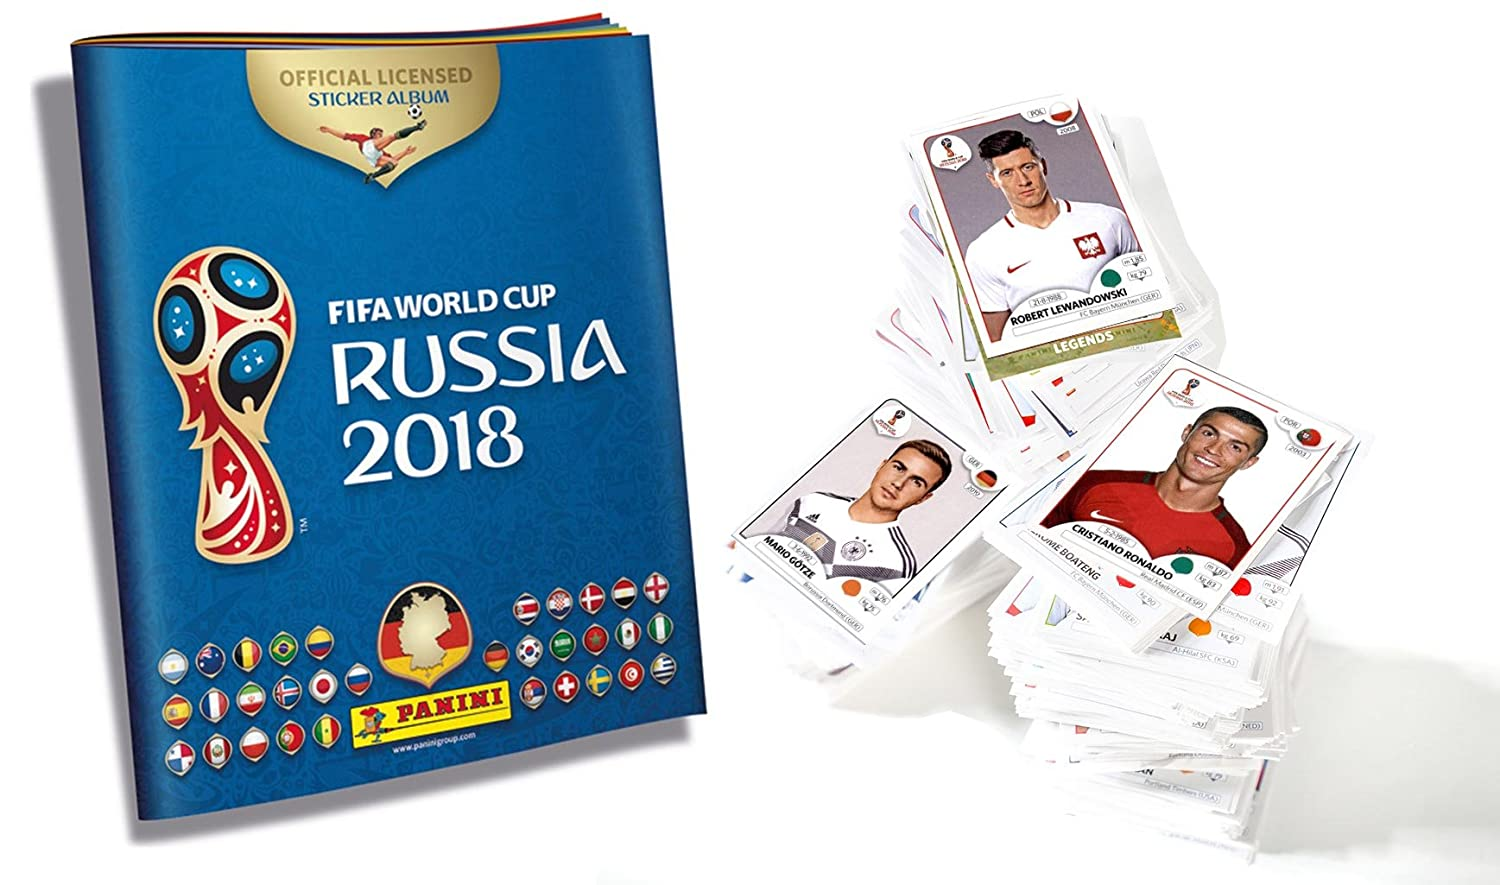 Panini World Cup Russia 2018 Sticker - 1 Complete Set All + 1 Sticker Album: Amazon.es: Juguetes y juegos